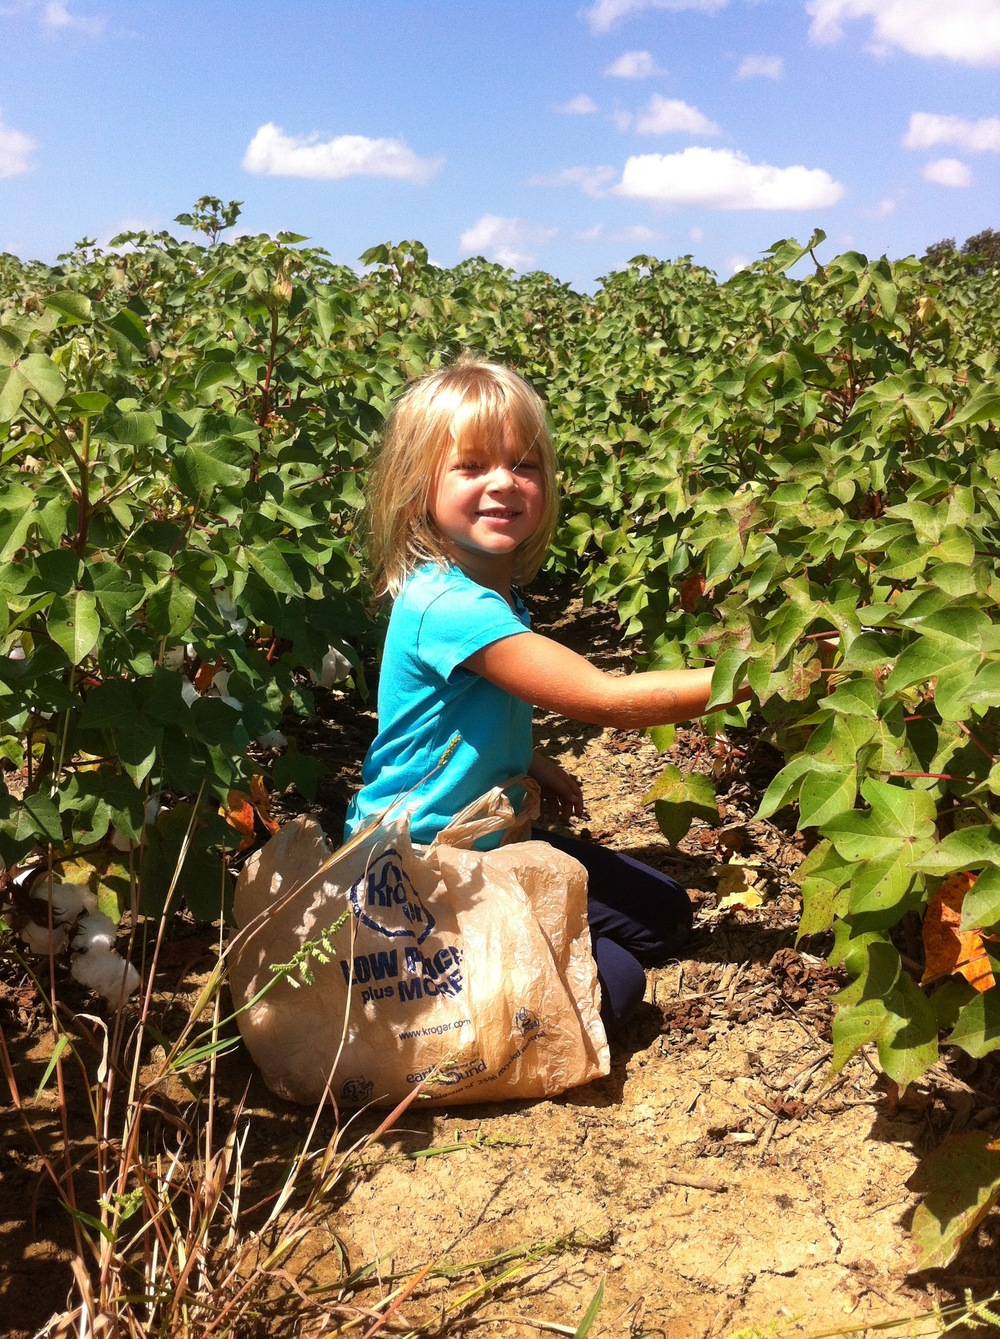 my daughter in a field of mature cotton